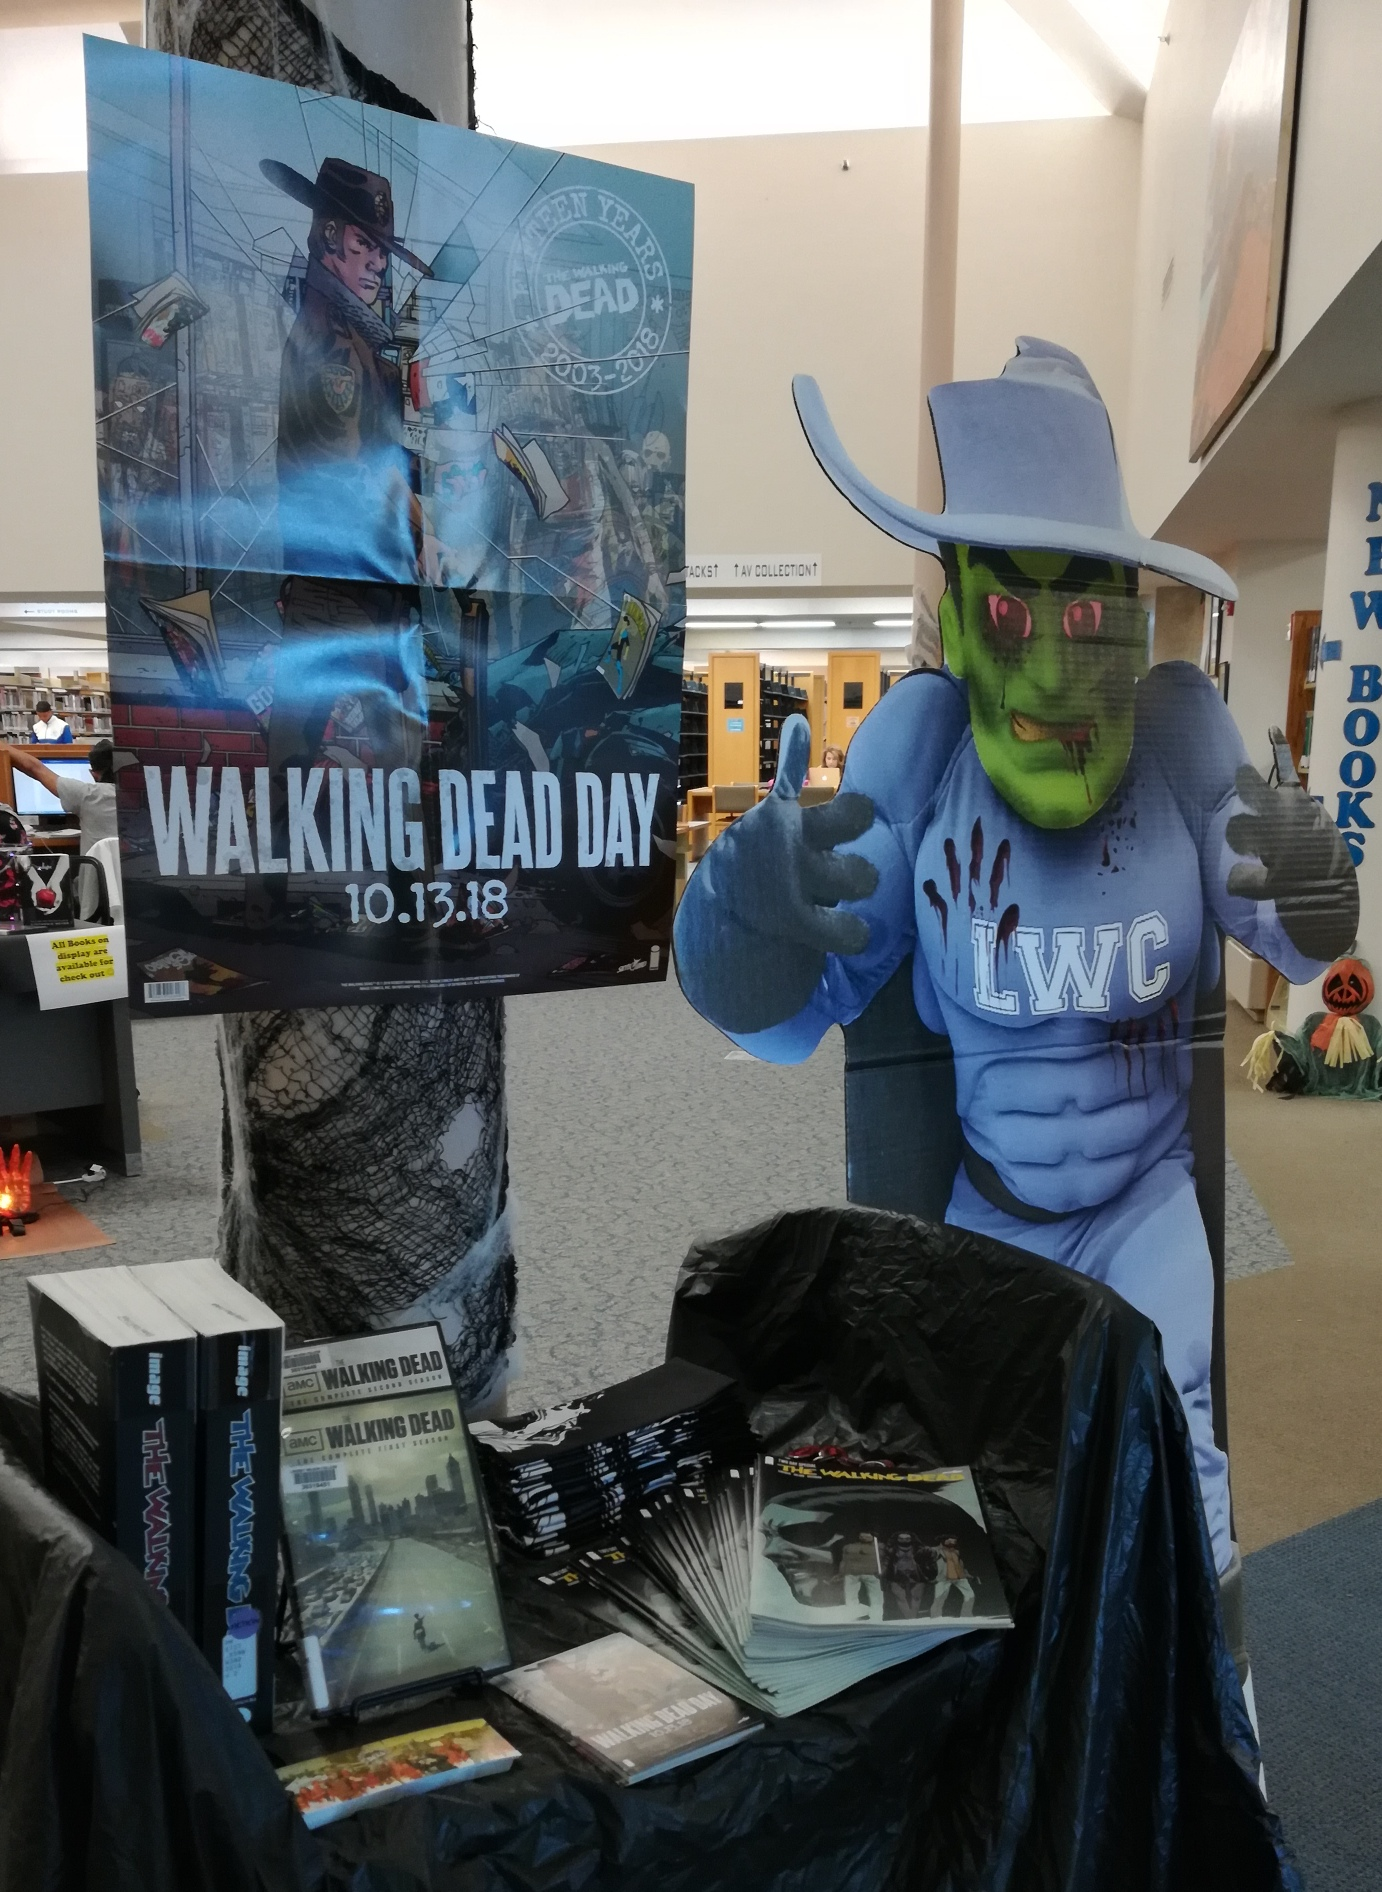 Walking Dead Day display with Zombie Blue Raider Bob and freebies